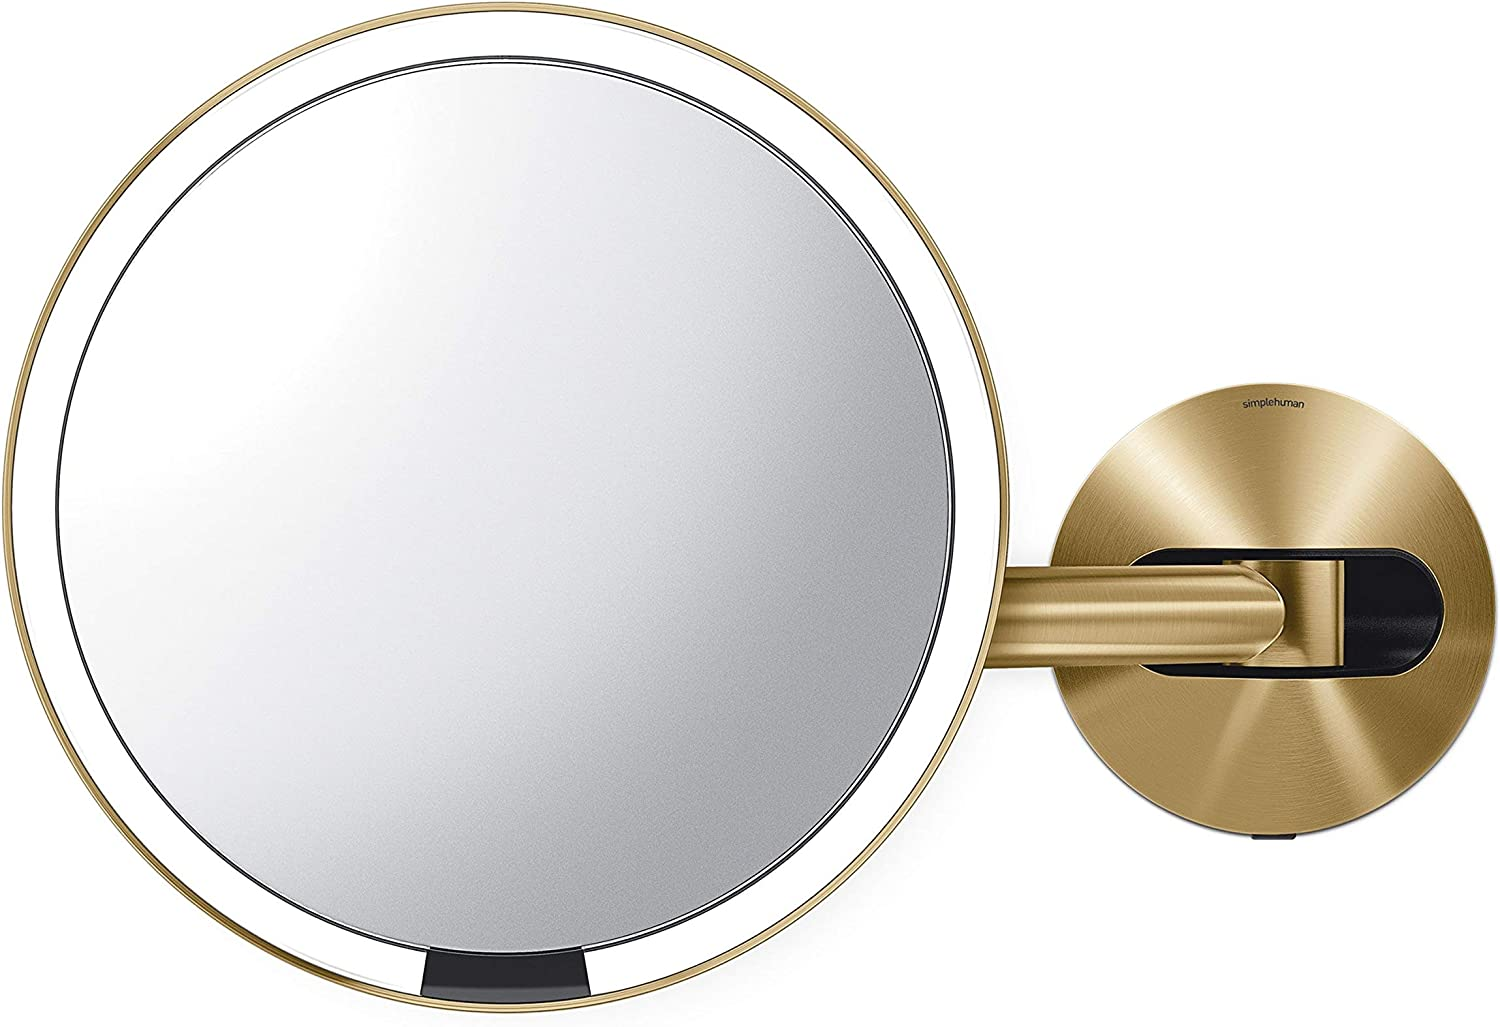 "simplehuman Sensor Lighted Makeup Vanity Mirror 8"" Round Wall Mount, 5X Magnification, Hard-Wired (100-240v), Brass Stainless Steel"